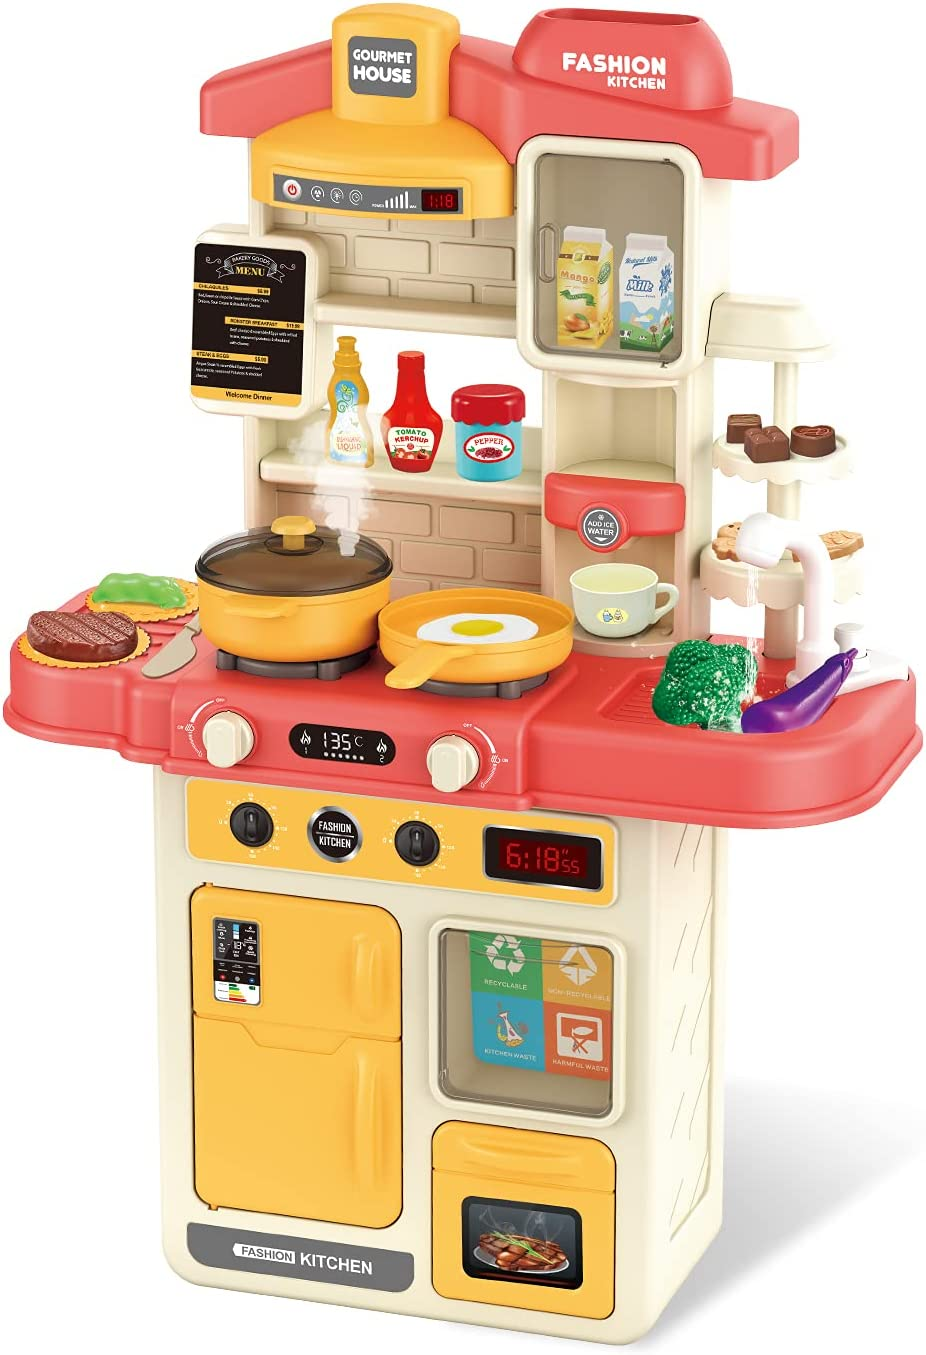 CUTE STONE Little Kitchen Playset, Kitchen Toy Set with Realistic Sound &Light, Play Sink, Cooking Stove with Steam, Play Food and Kitchen Accessories, Great Kitchen Toys for Toddlers Kids